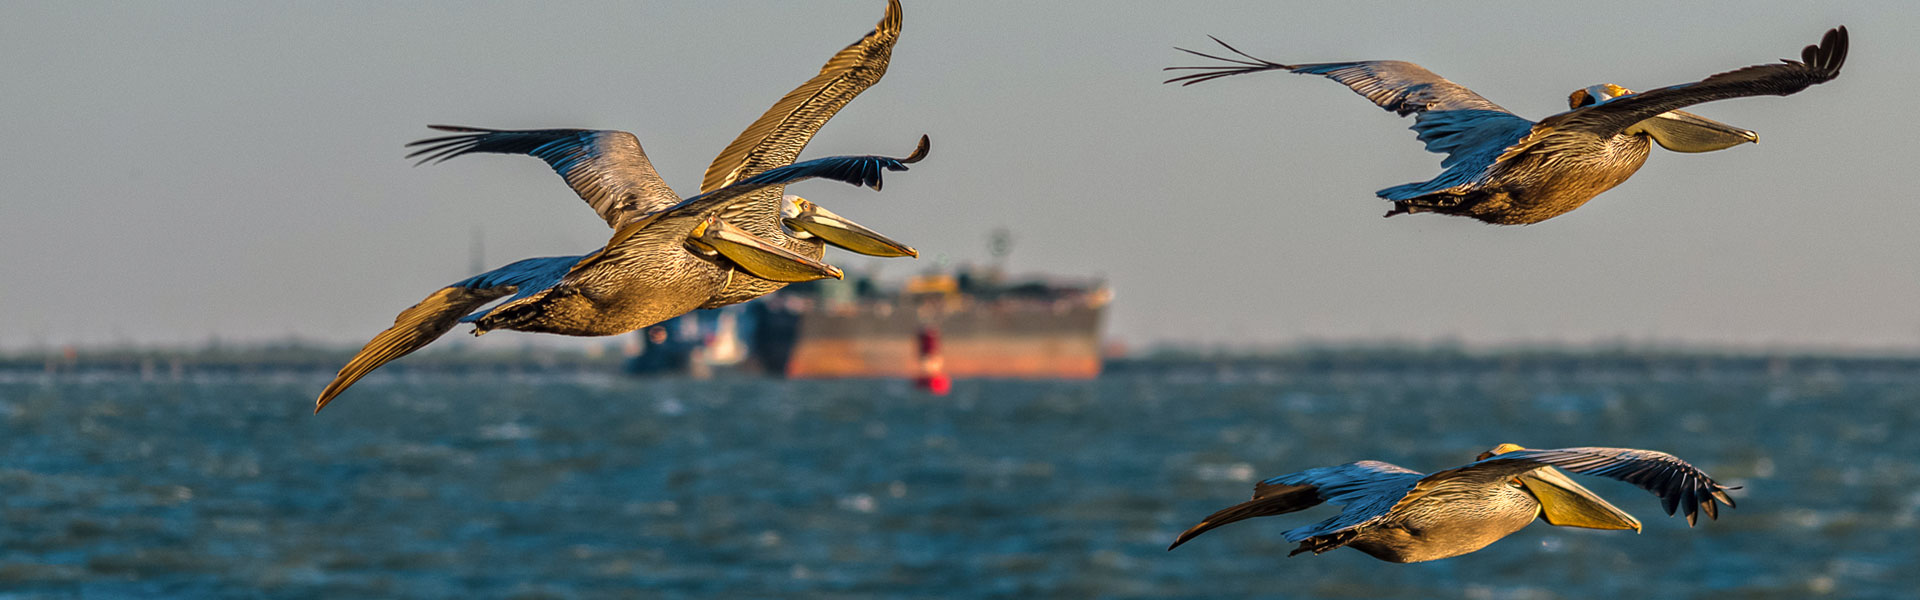 Tanker with Pelicans